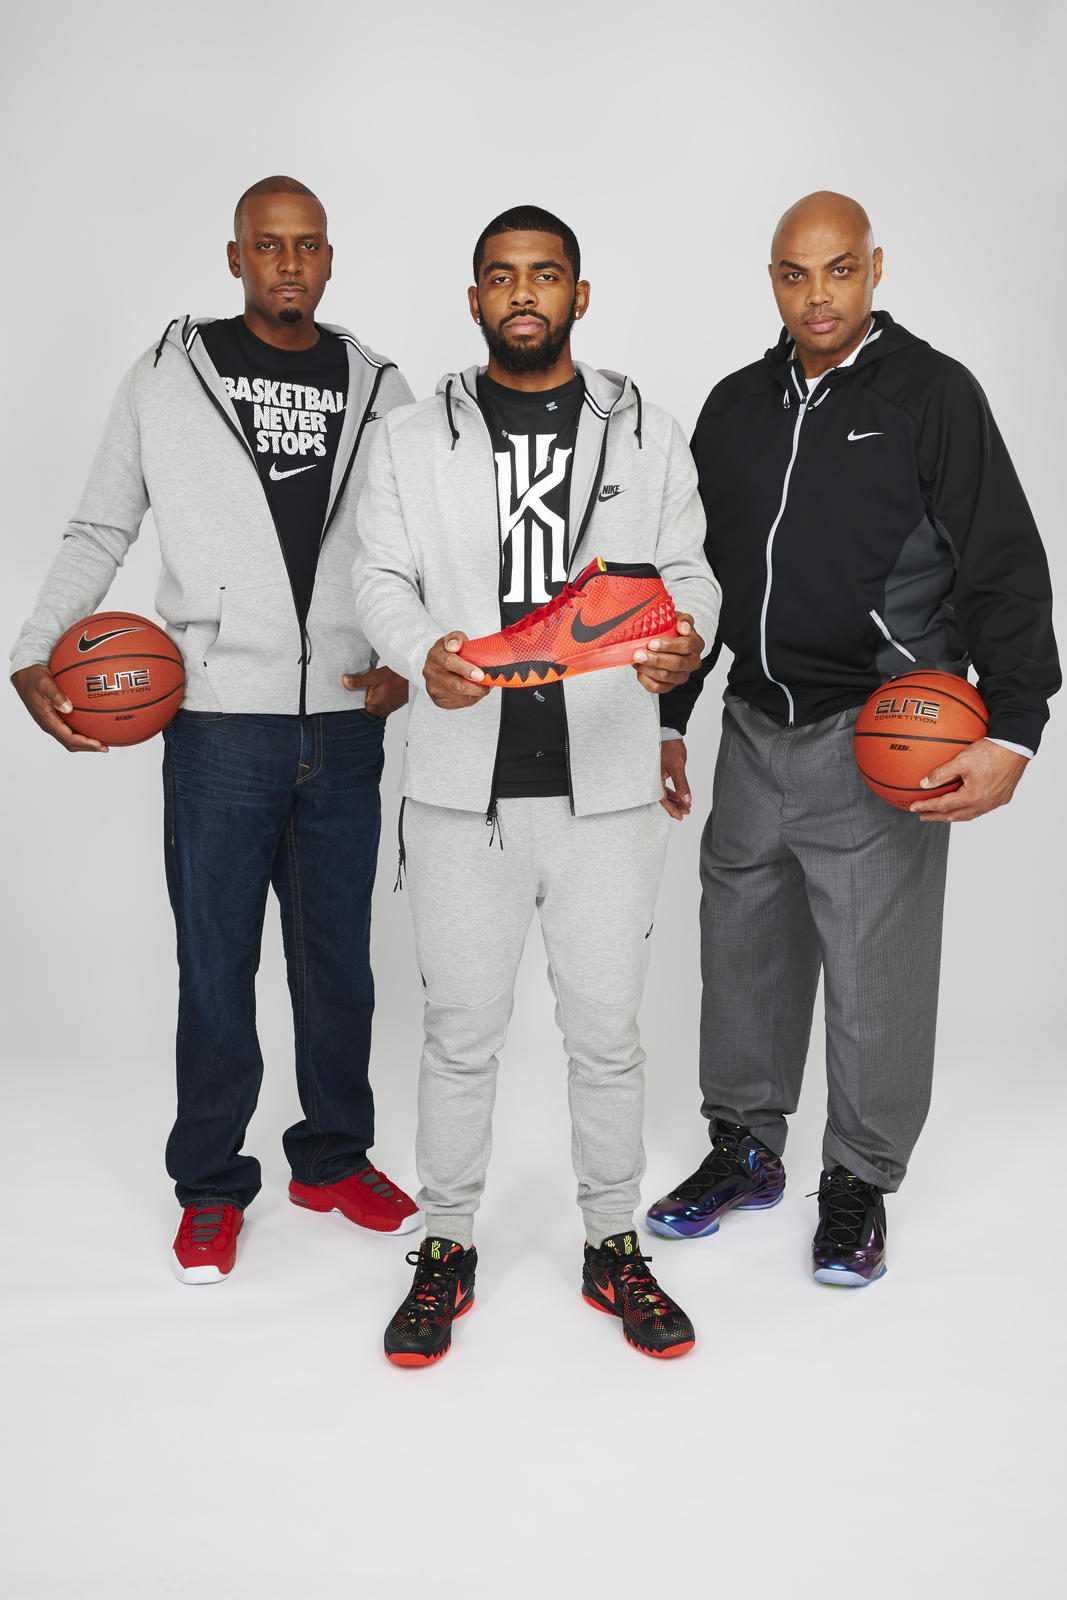 Penny_Hardaway-Kyrie_Irving-Charles_Barkley_native_1600